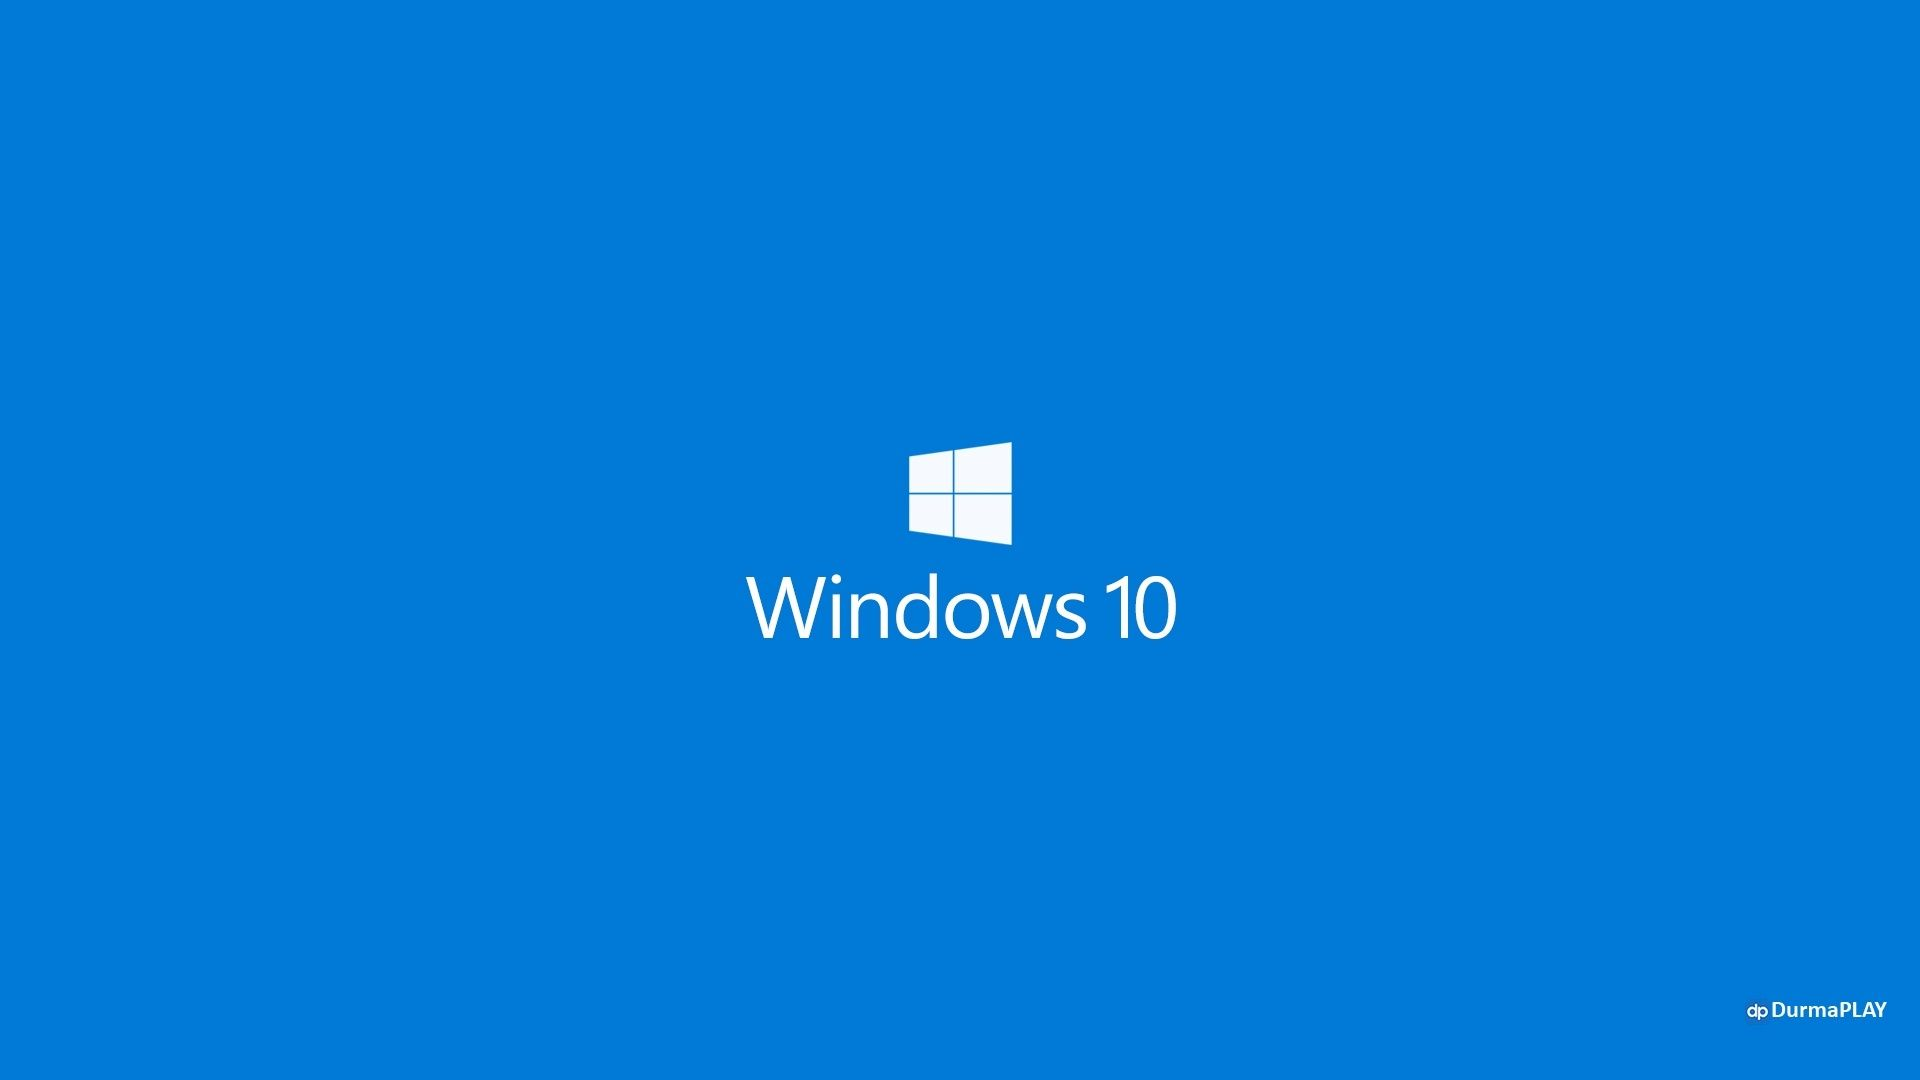 Https Www Durmaplay Com Tr Store 10 Pro Buy 10 Pro Windows 10 Windows Windows 10 Mobile